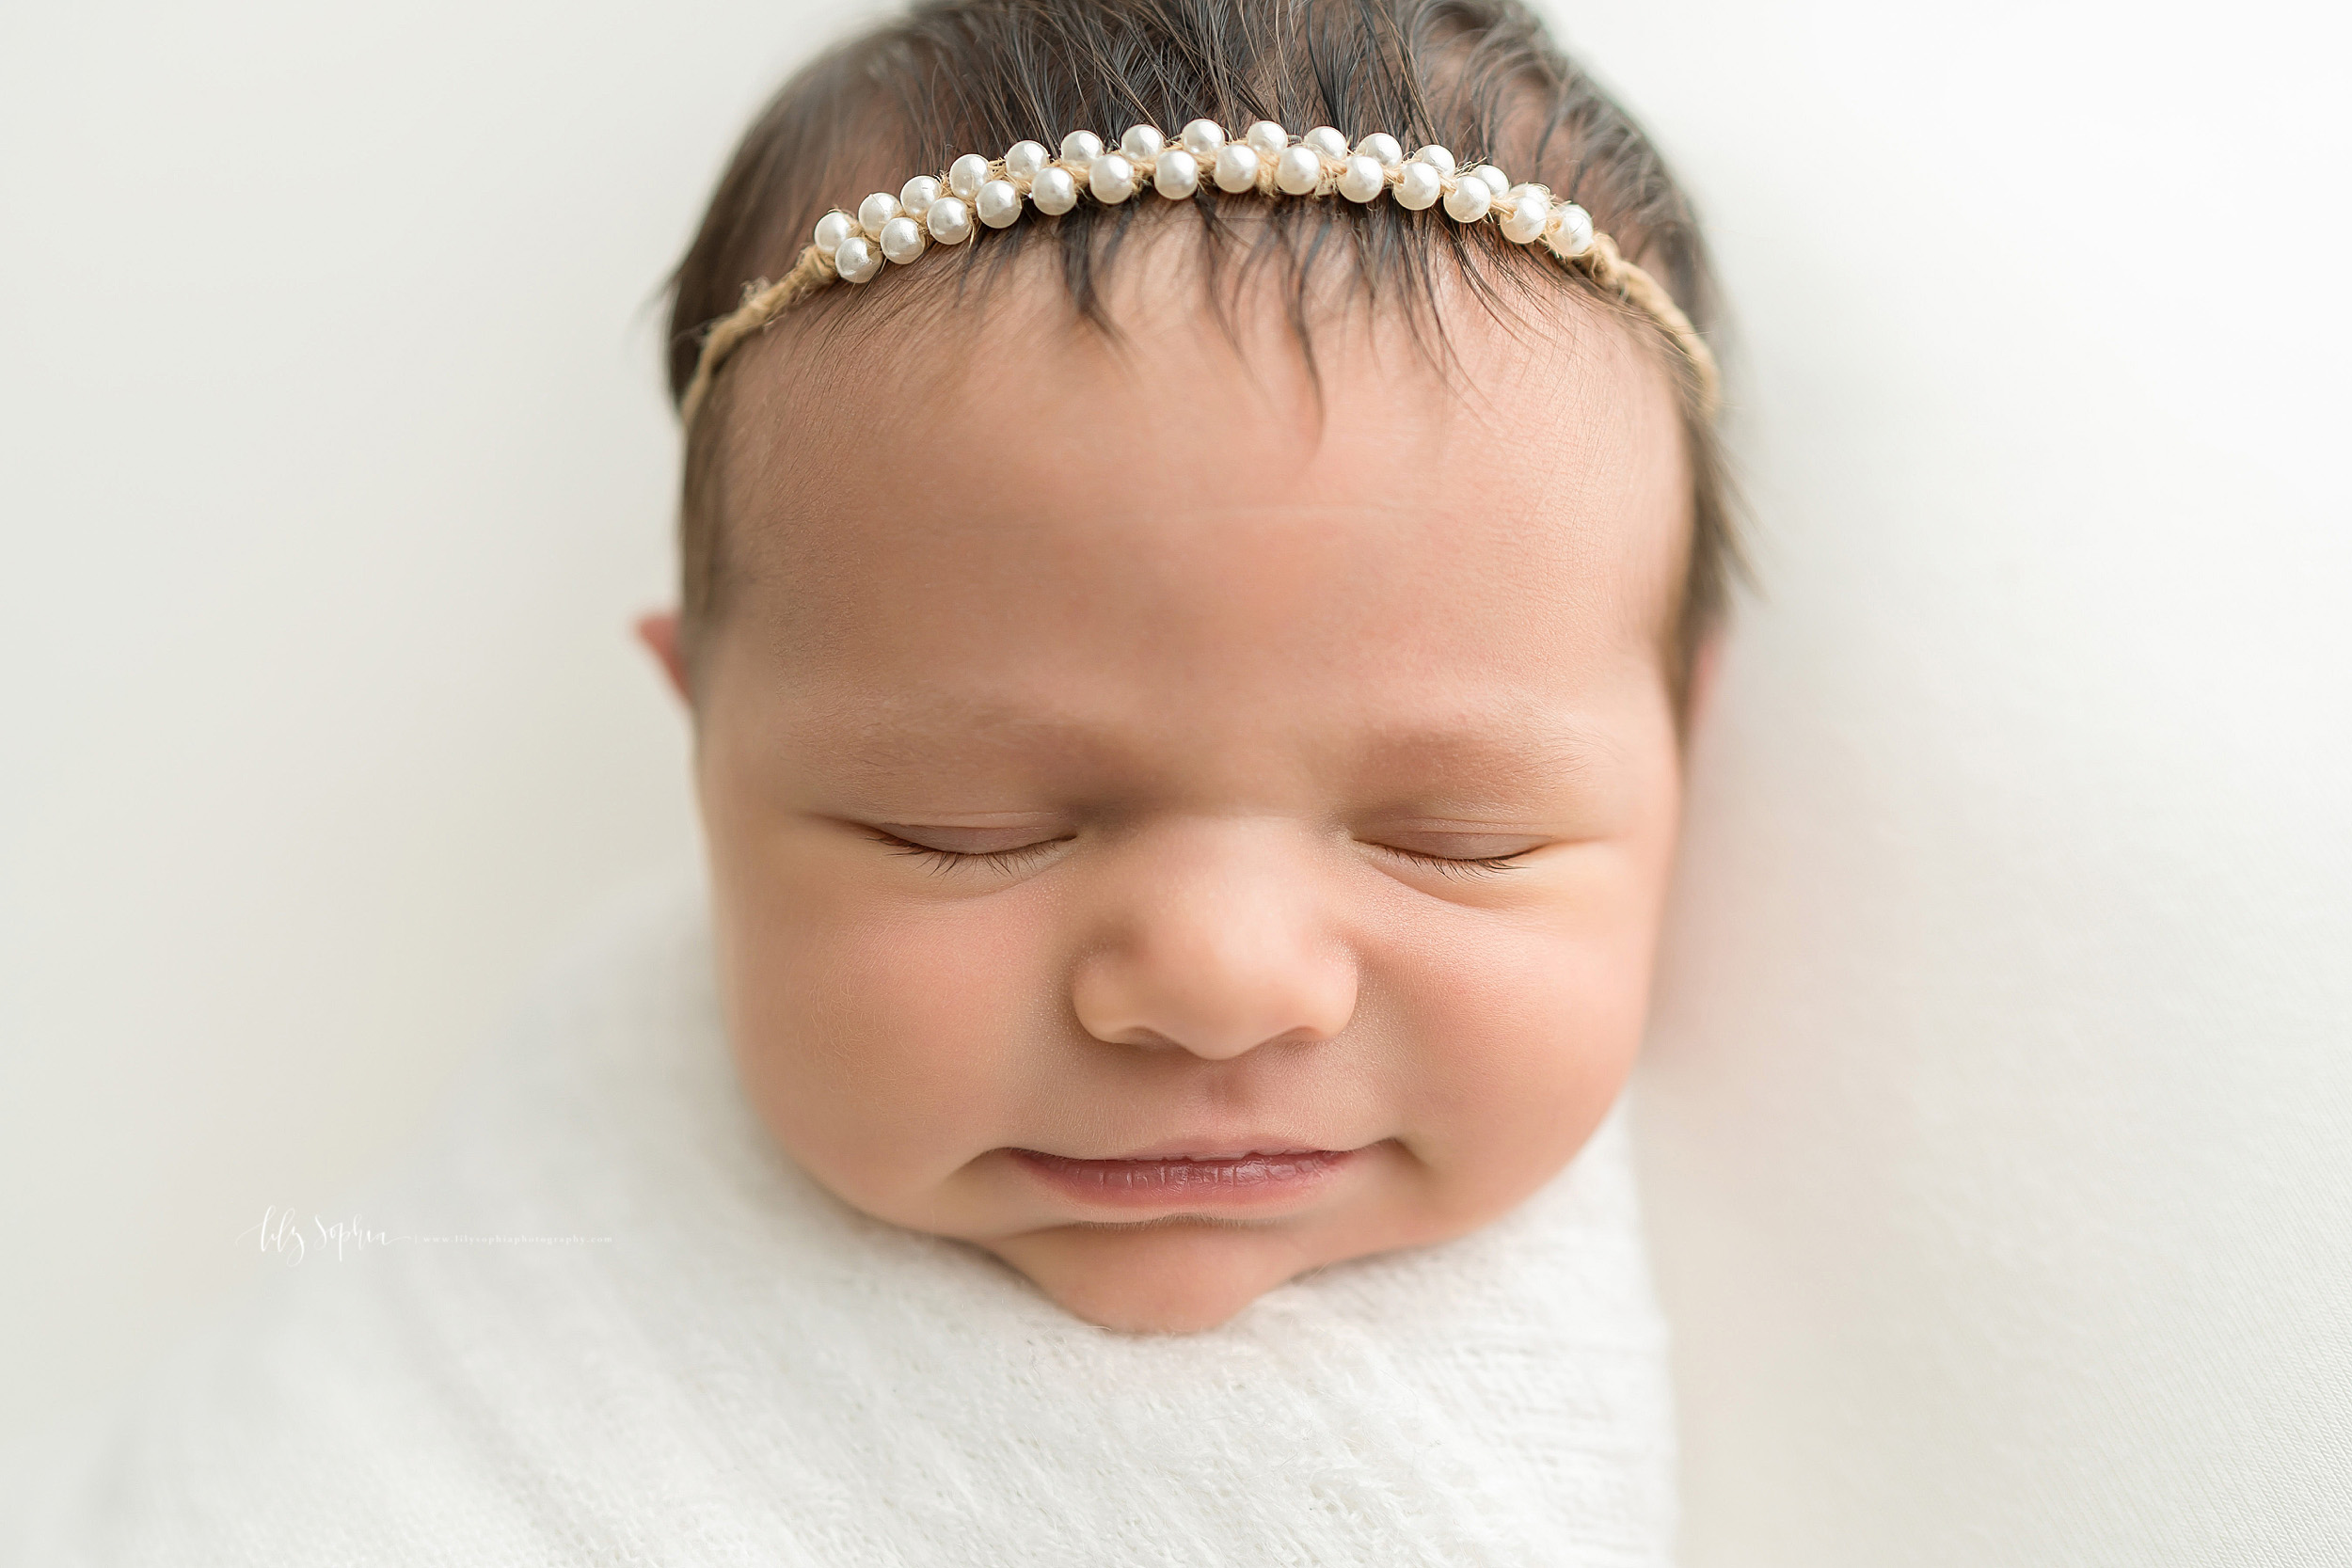 Photo of a smiling newborn as she sleeps in an Atlanta studio.  She is wearing a double strand of pearl headband in her brown hair and is wrapped to her neck in a soft white blanket.